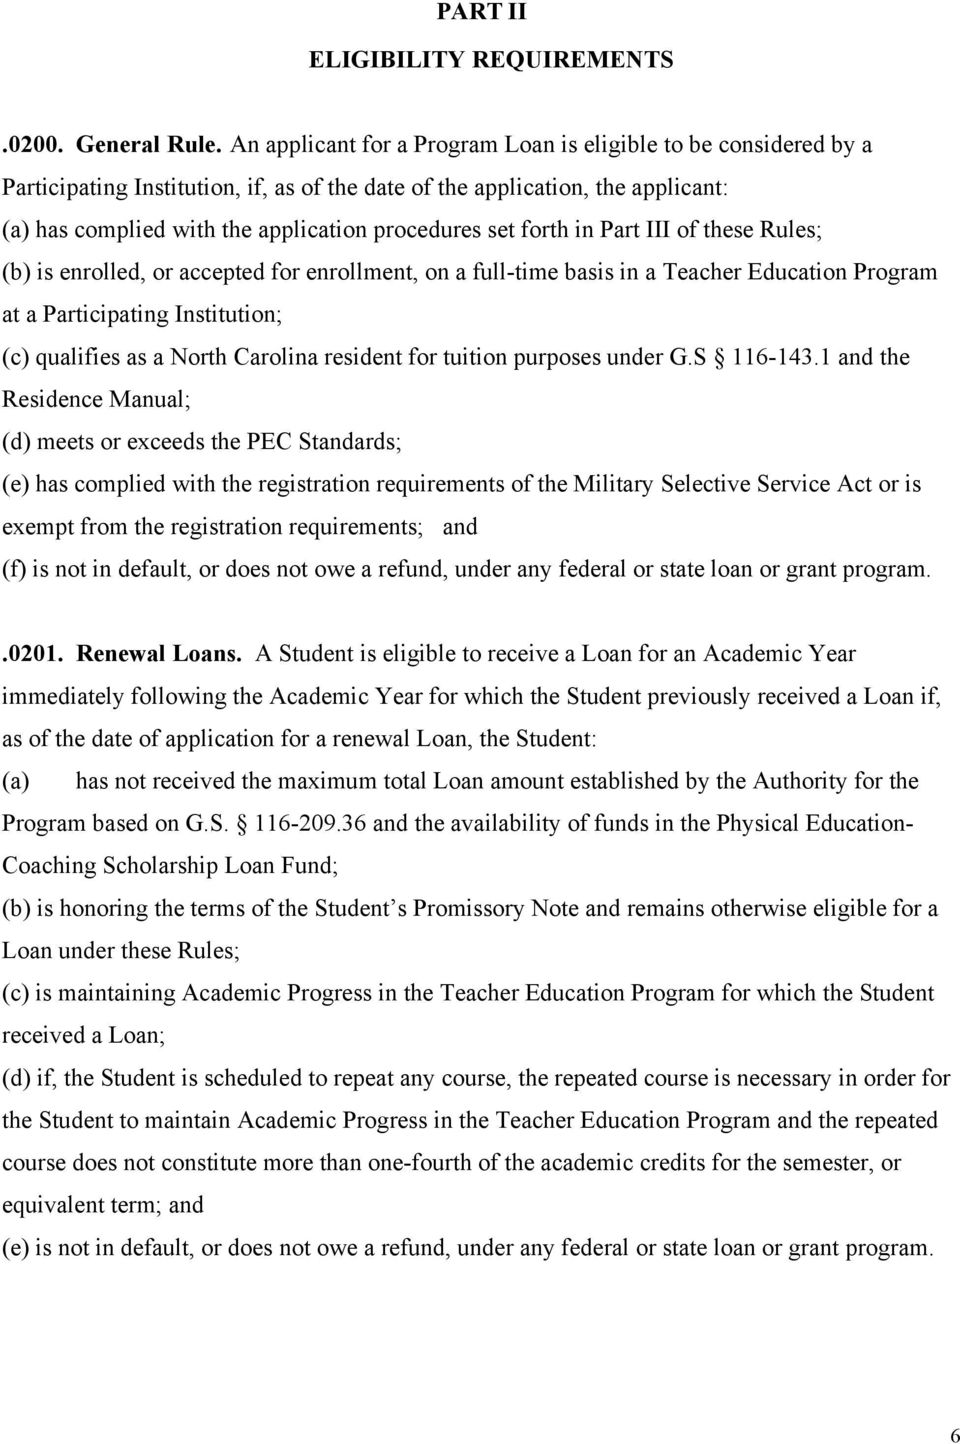 forth in Part III of these Rules; (b) is enrolled, or accepted for enrollment, on a full-time basis in a Teacher Education Program at a Participating Institution; (c) qualifies as a North Carolina